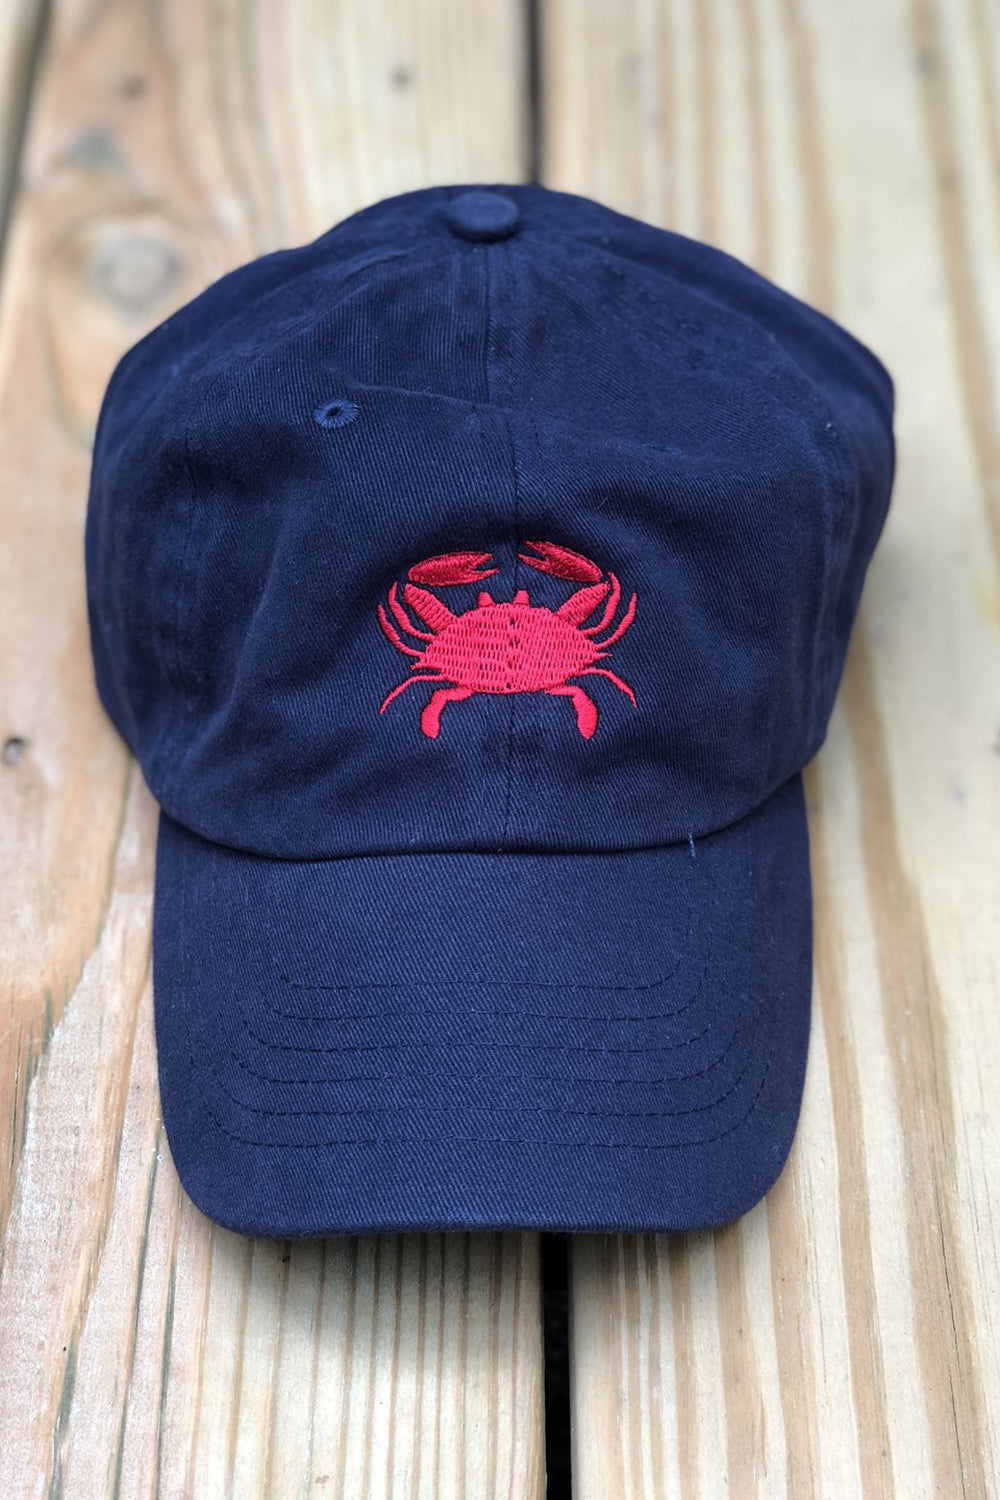 Adjustable Hat - Crab Navy & Red